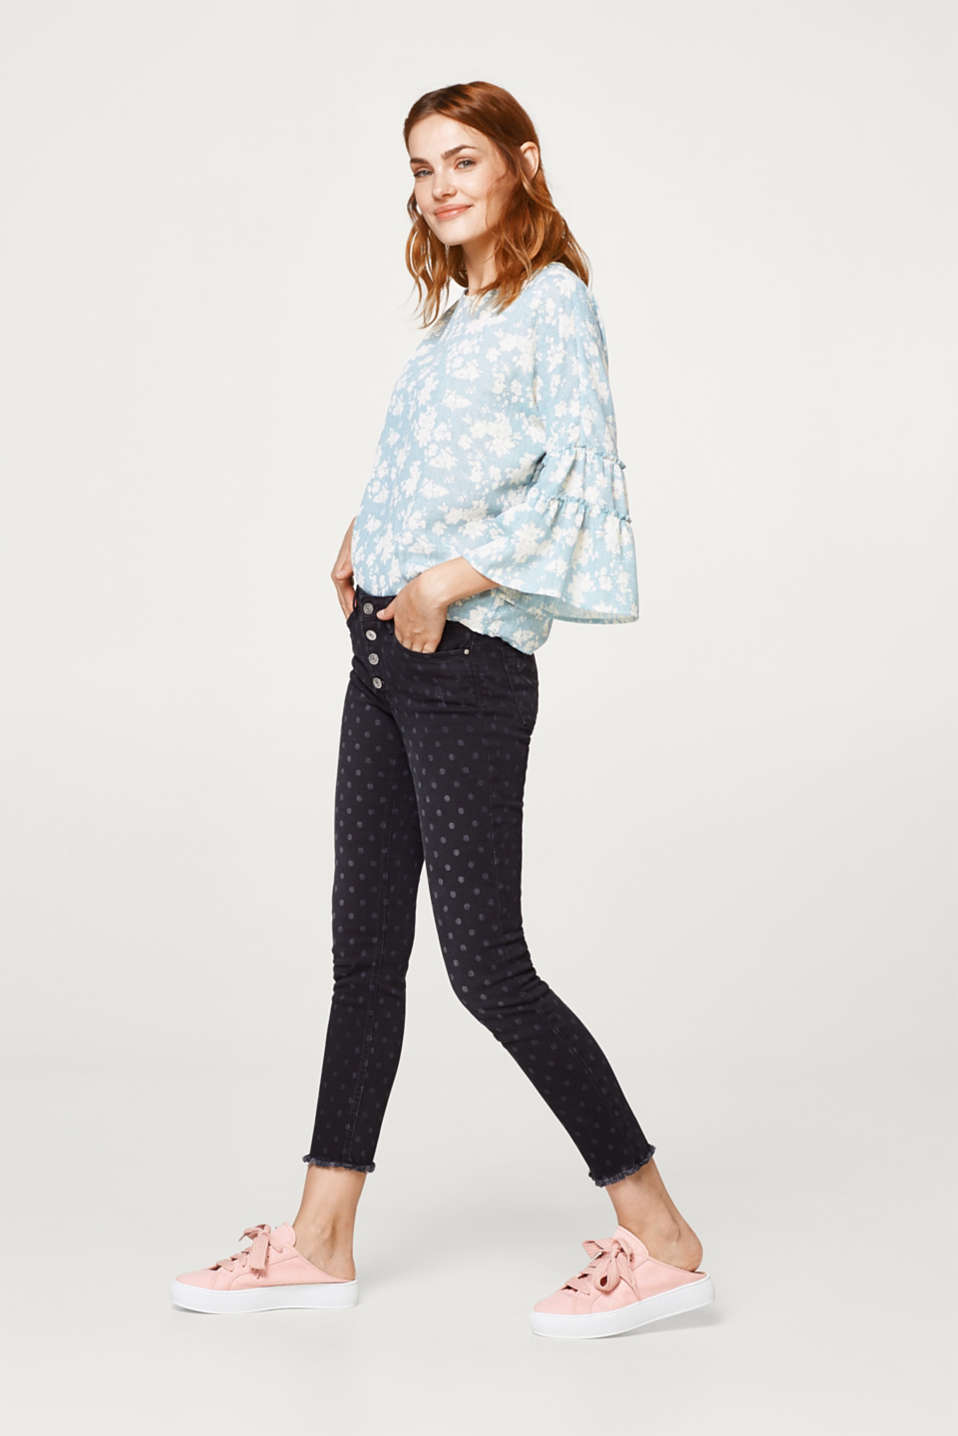 edc - Cotton jeans with a polka dot pattern